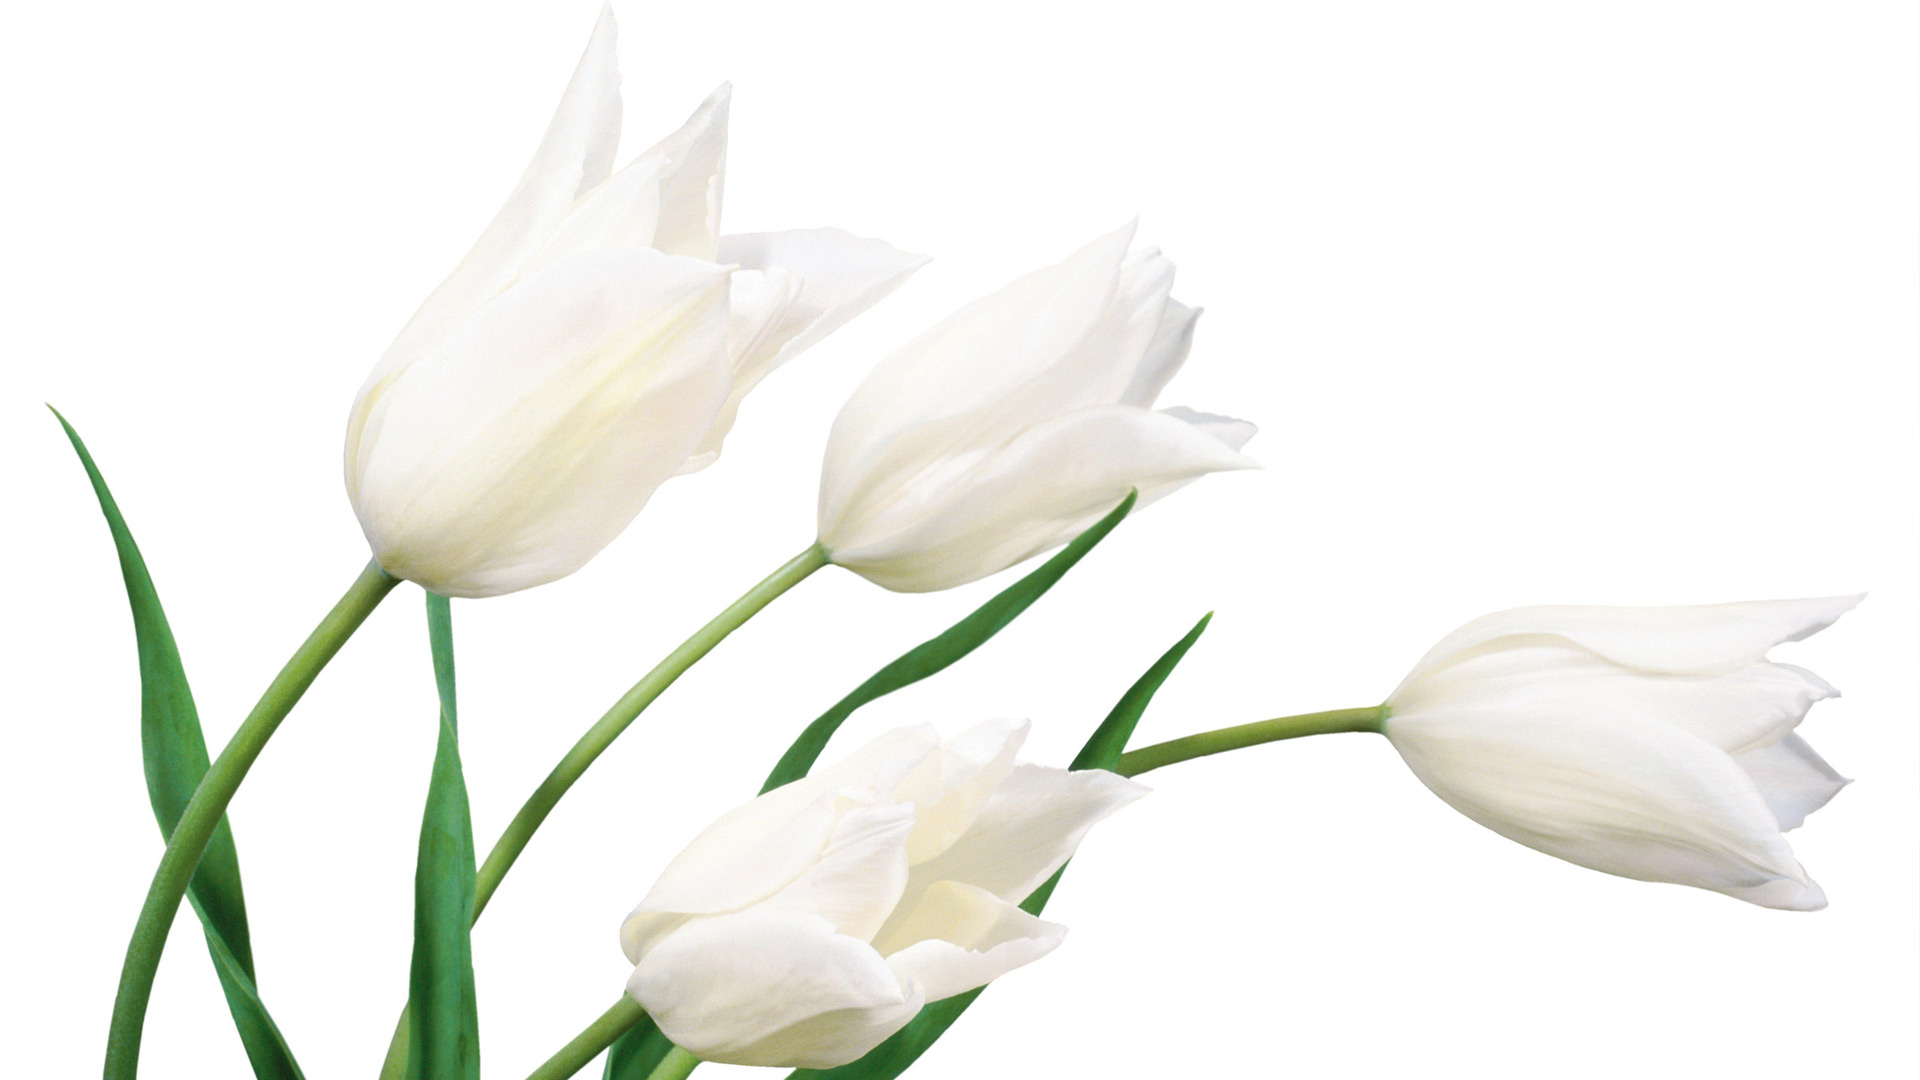 Download 52 Clean White Wallpapers For Desktop Laptops